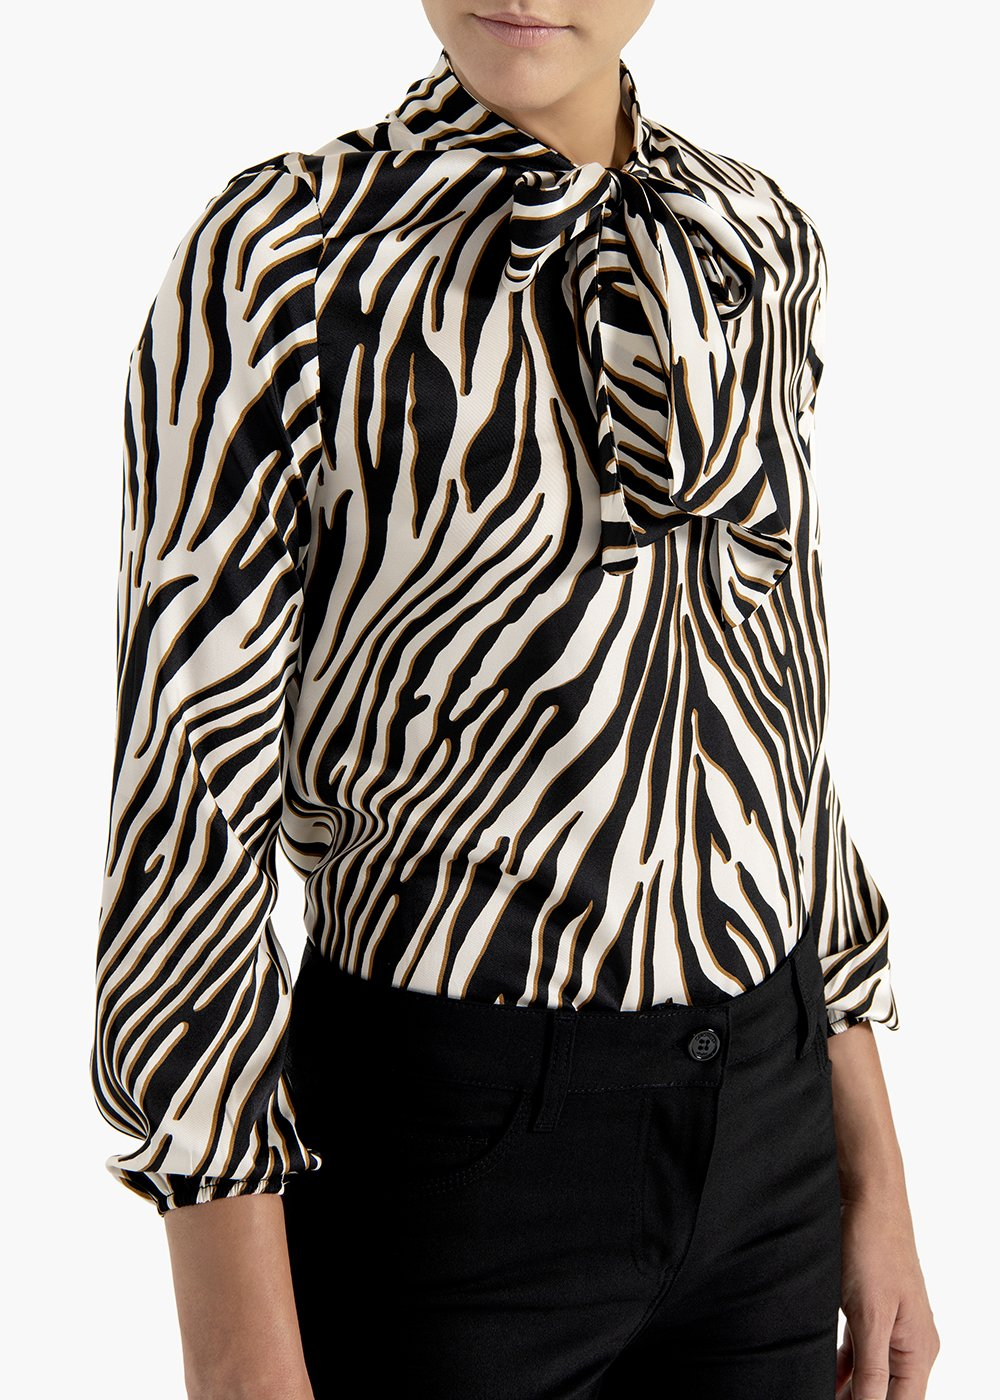 Zebra print t-shirt Suami in fluid fabric